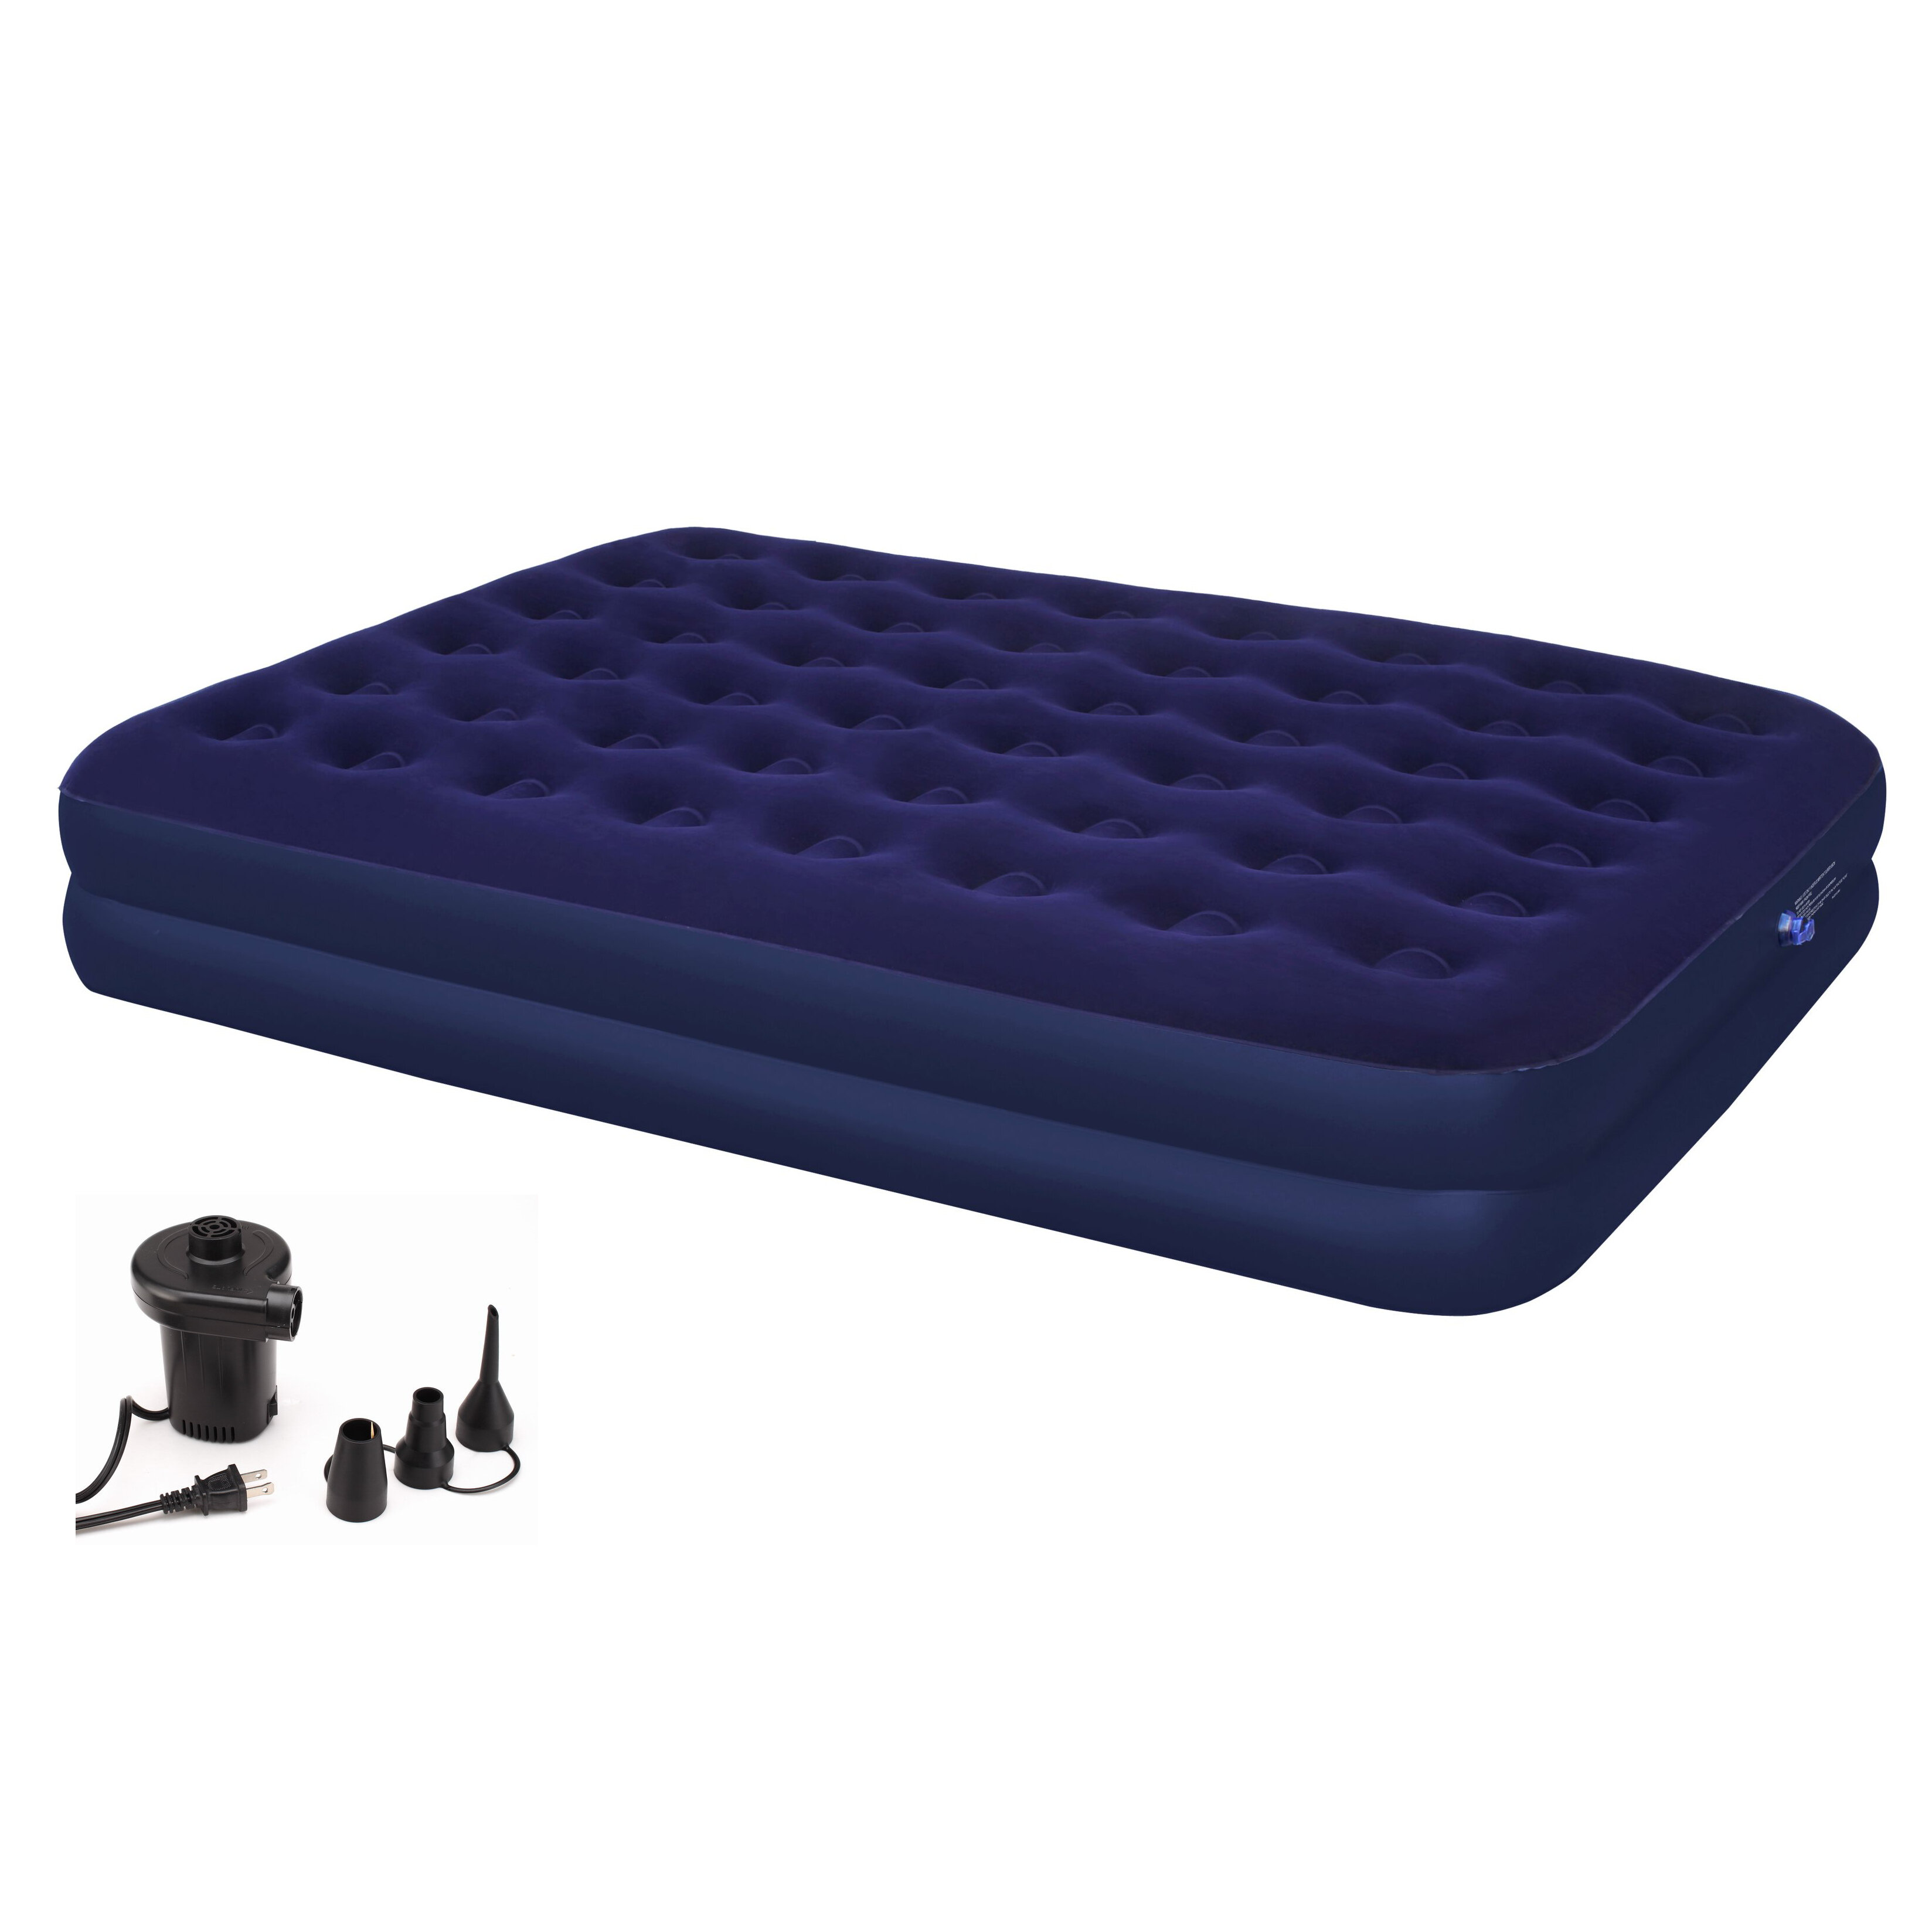 insta raised best pump instabed images flat with headboard of bed air mattress queen never awesome neverflat